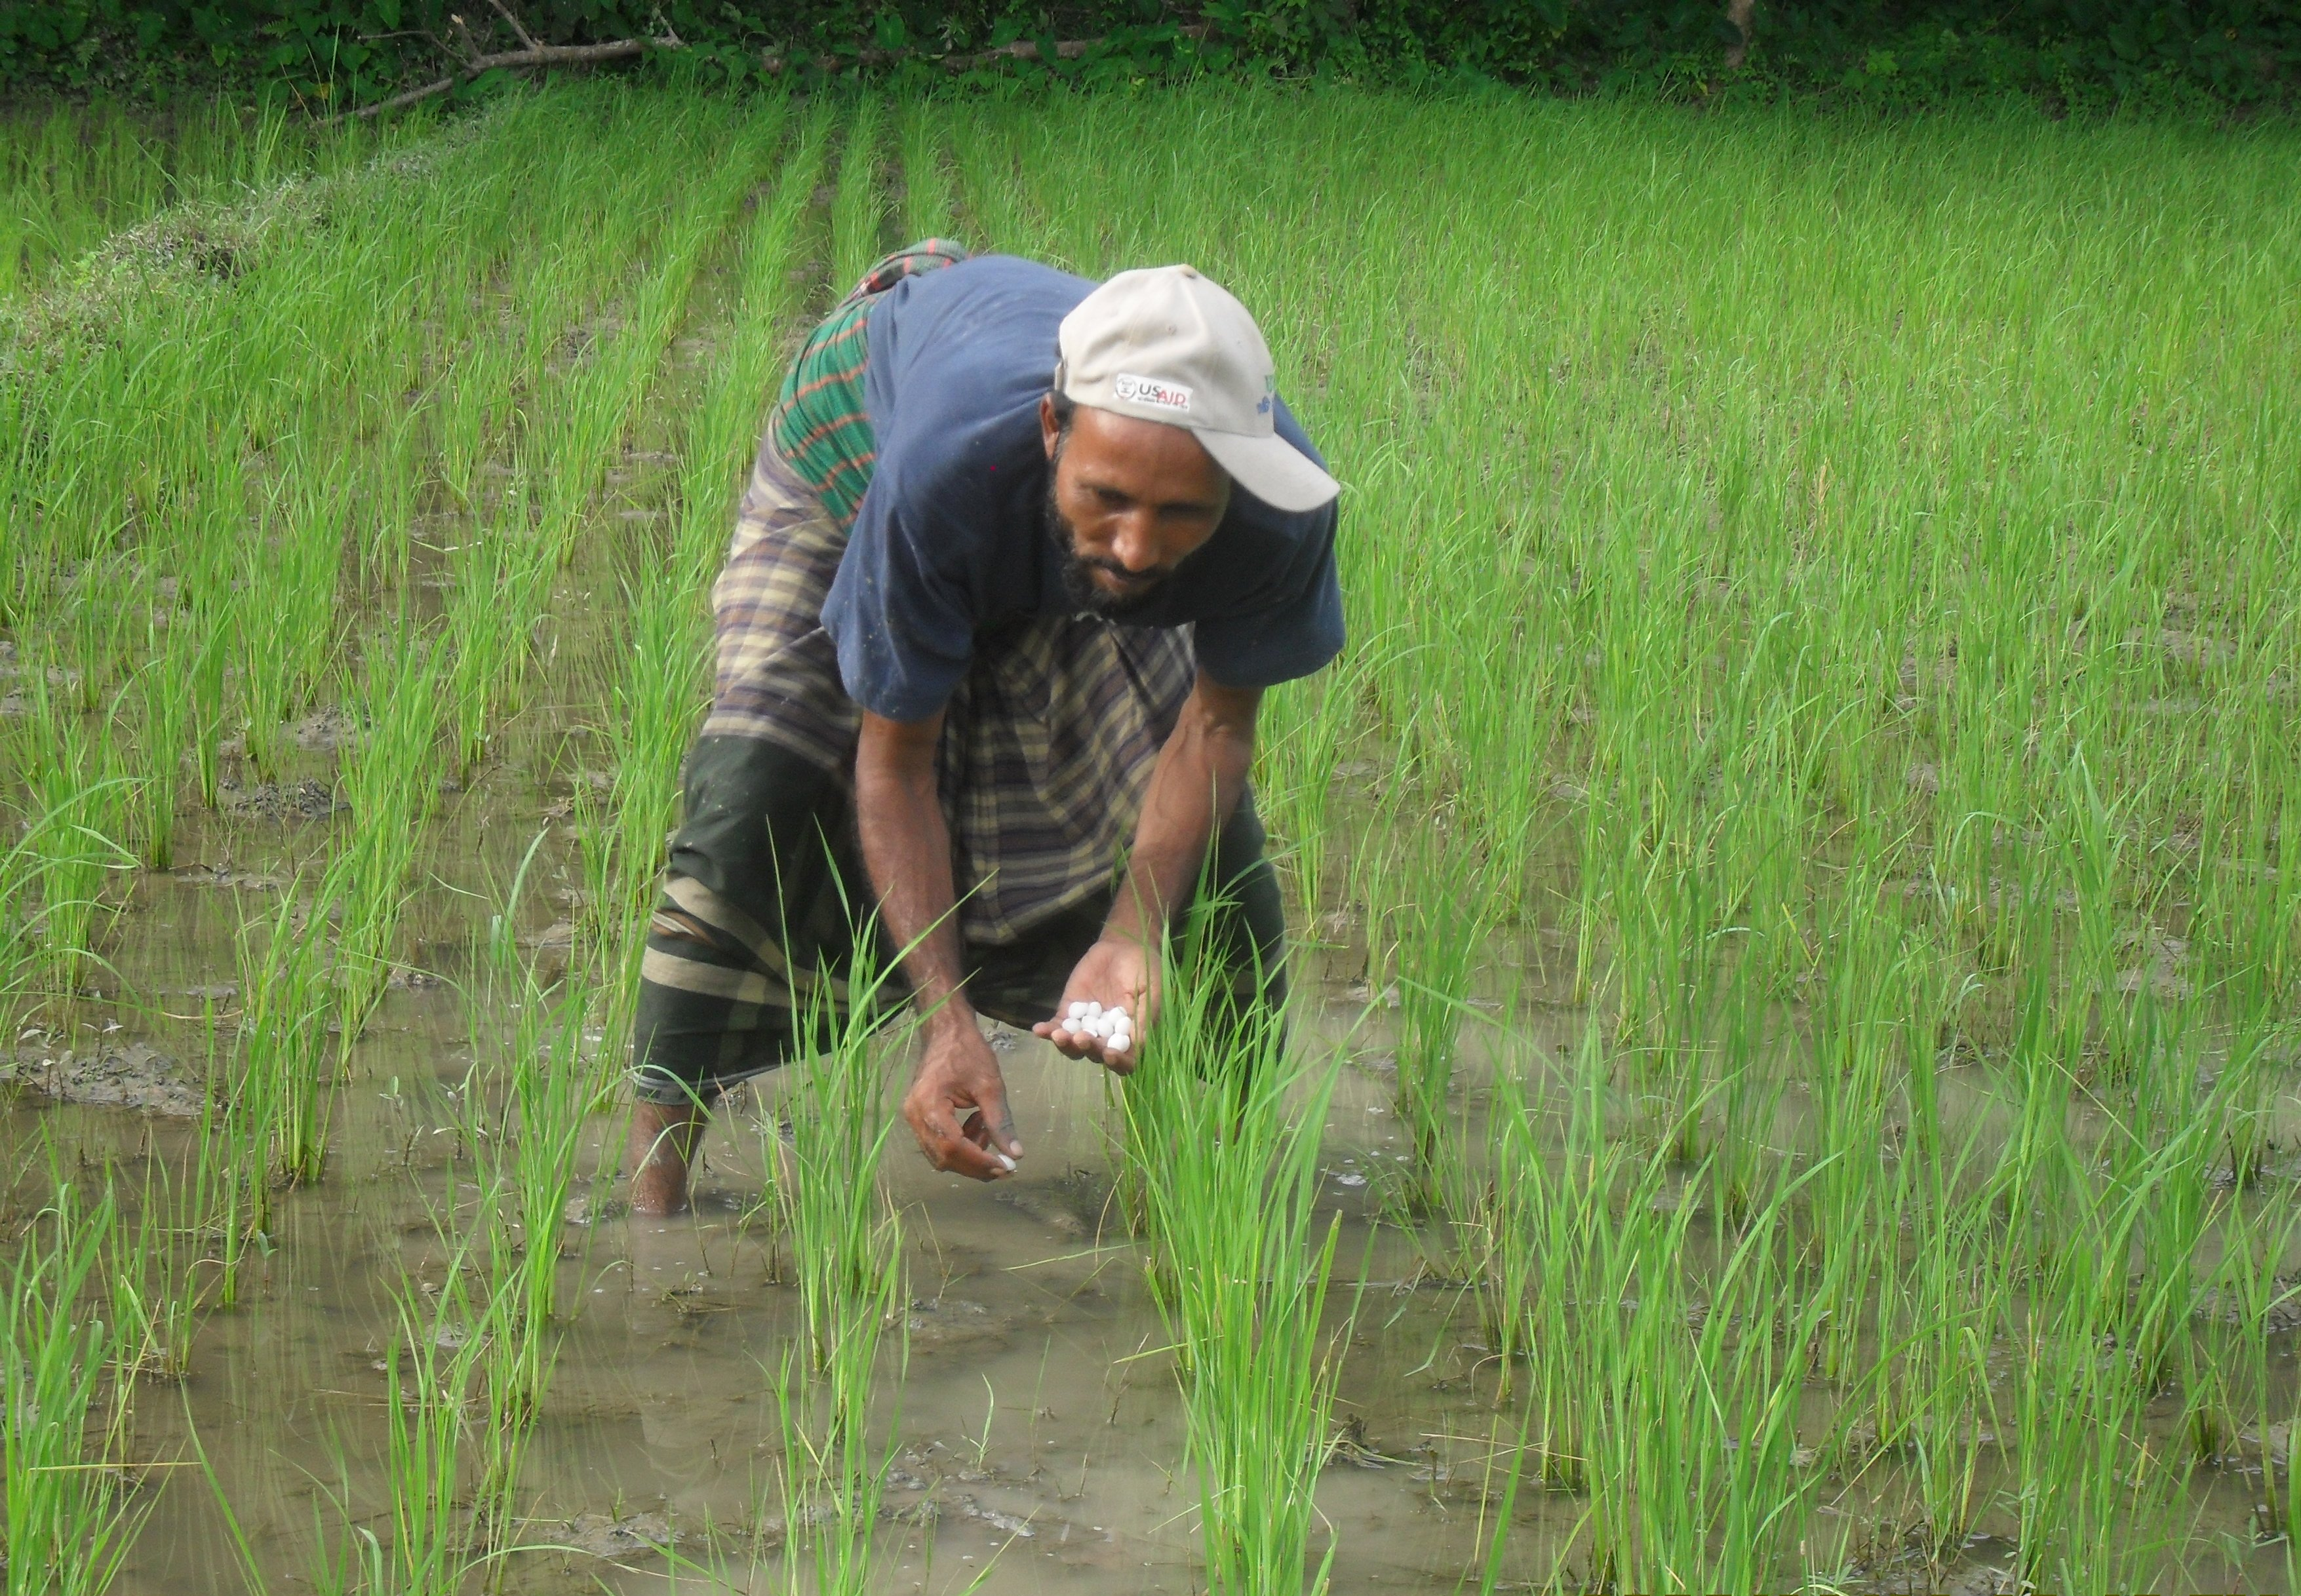 Farmer using Urea Deep Placement Technology at the rice field